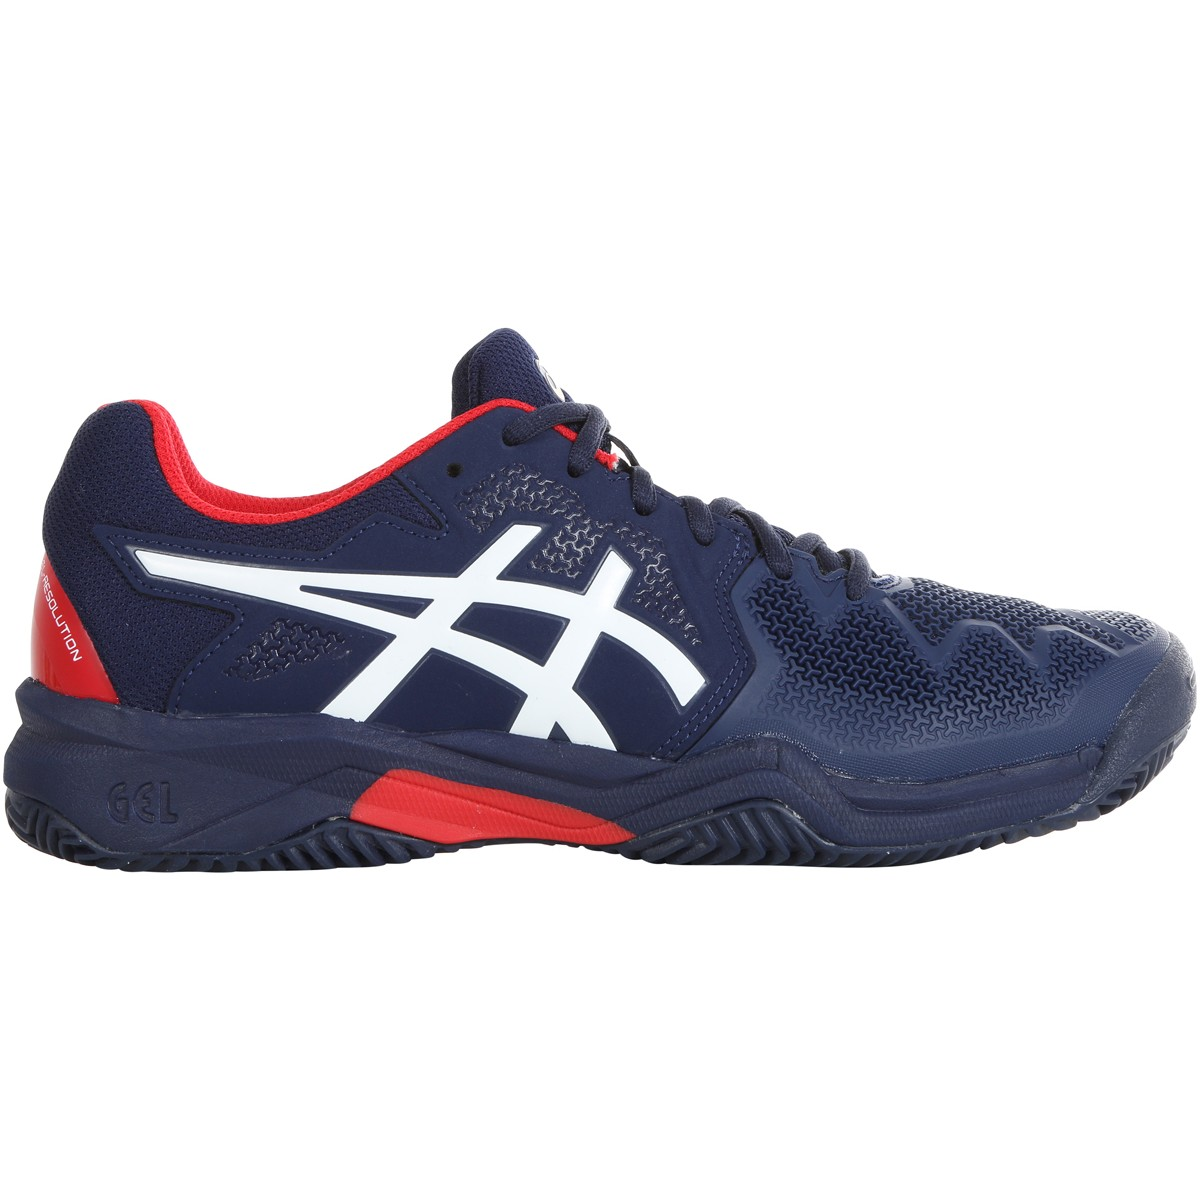 CHAUSSURES ASICS JUNIOR GEL RESOLUTION GS TERRE BATTUE